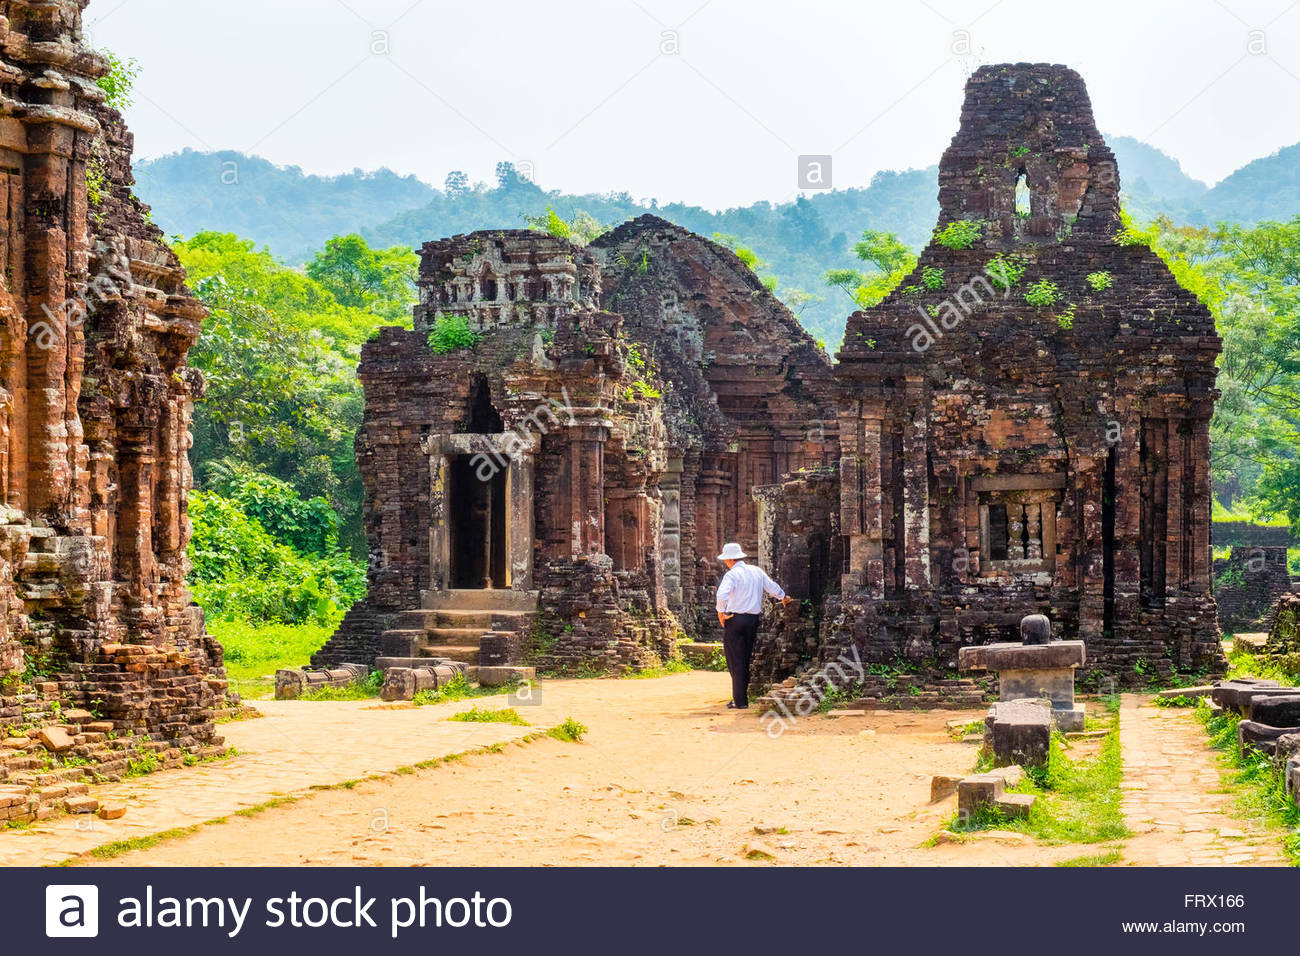 Un guide vietnamien à mon fils ruines Cham site du temple, District de Duy Xuyen, Province de Quang Nam, Vietnam Photo Stock